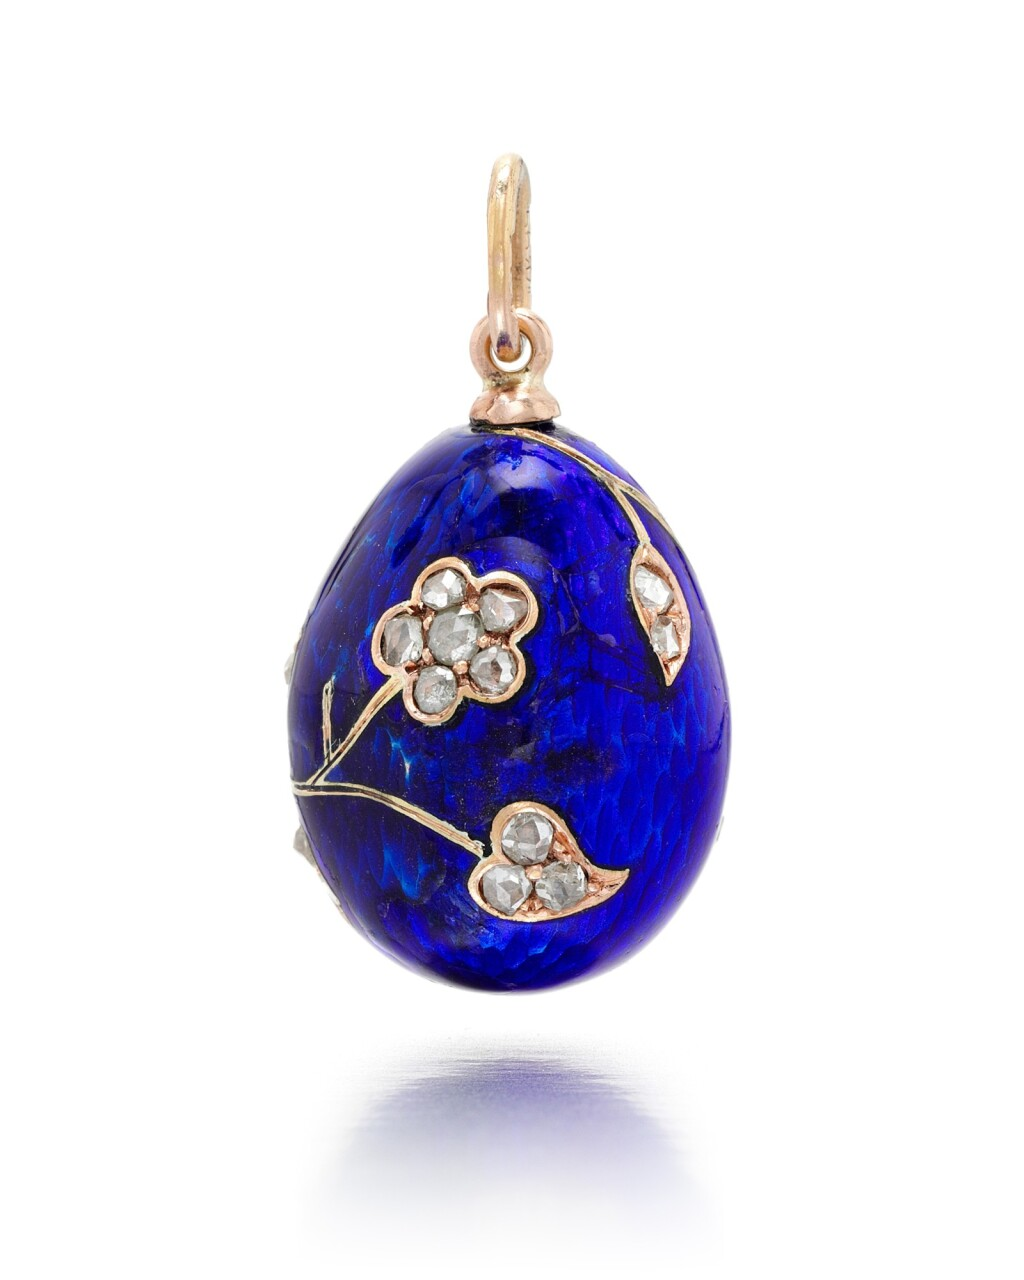 A FABERGÉ JEWELLED GOLD-MOUNTED ENAMEL EGG PENDANT, WORKMASTER AUGUST HOLLMING, ST PETERSBURG, 1899-1903